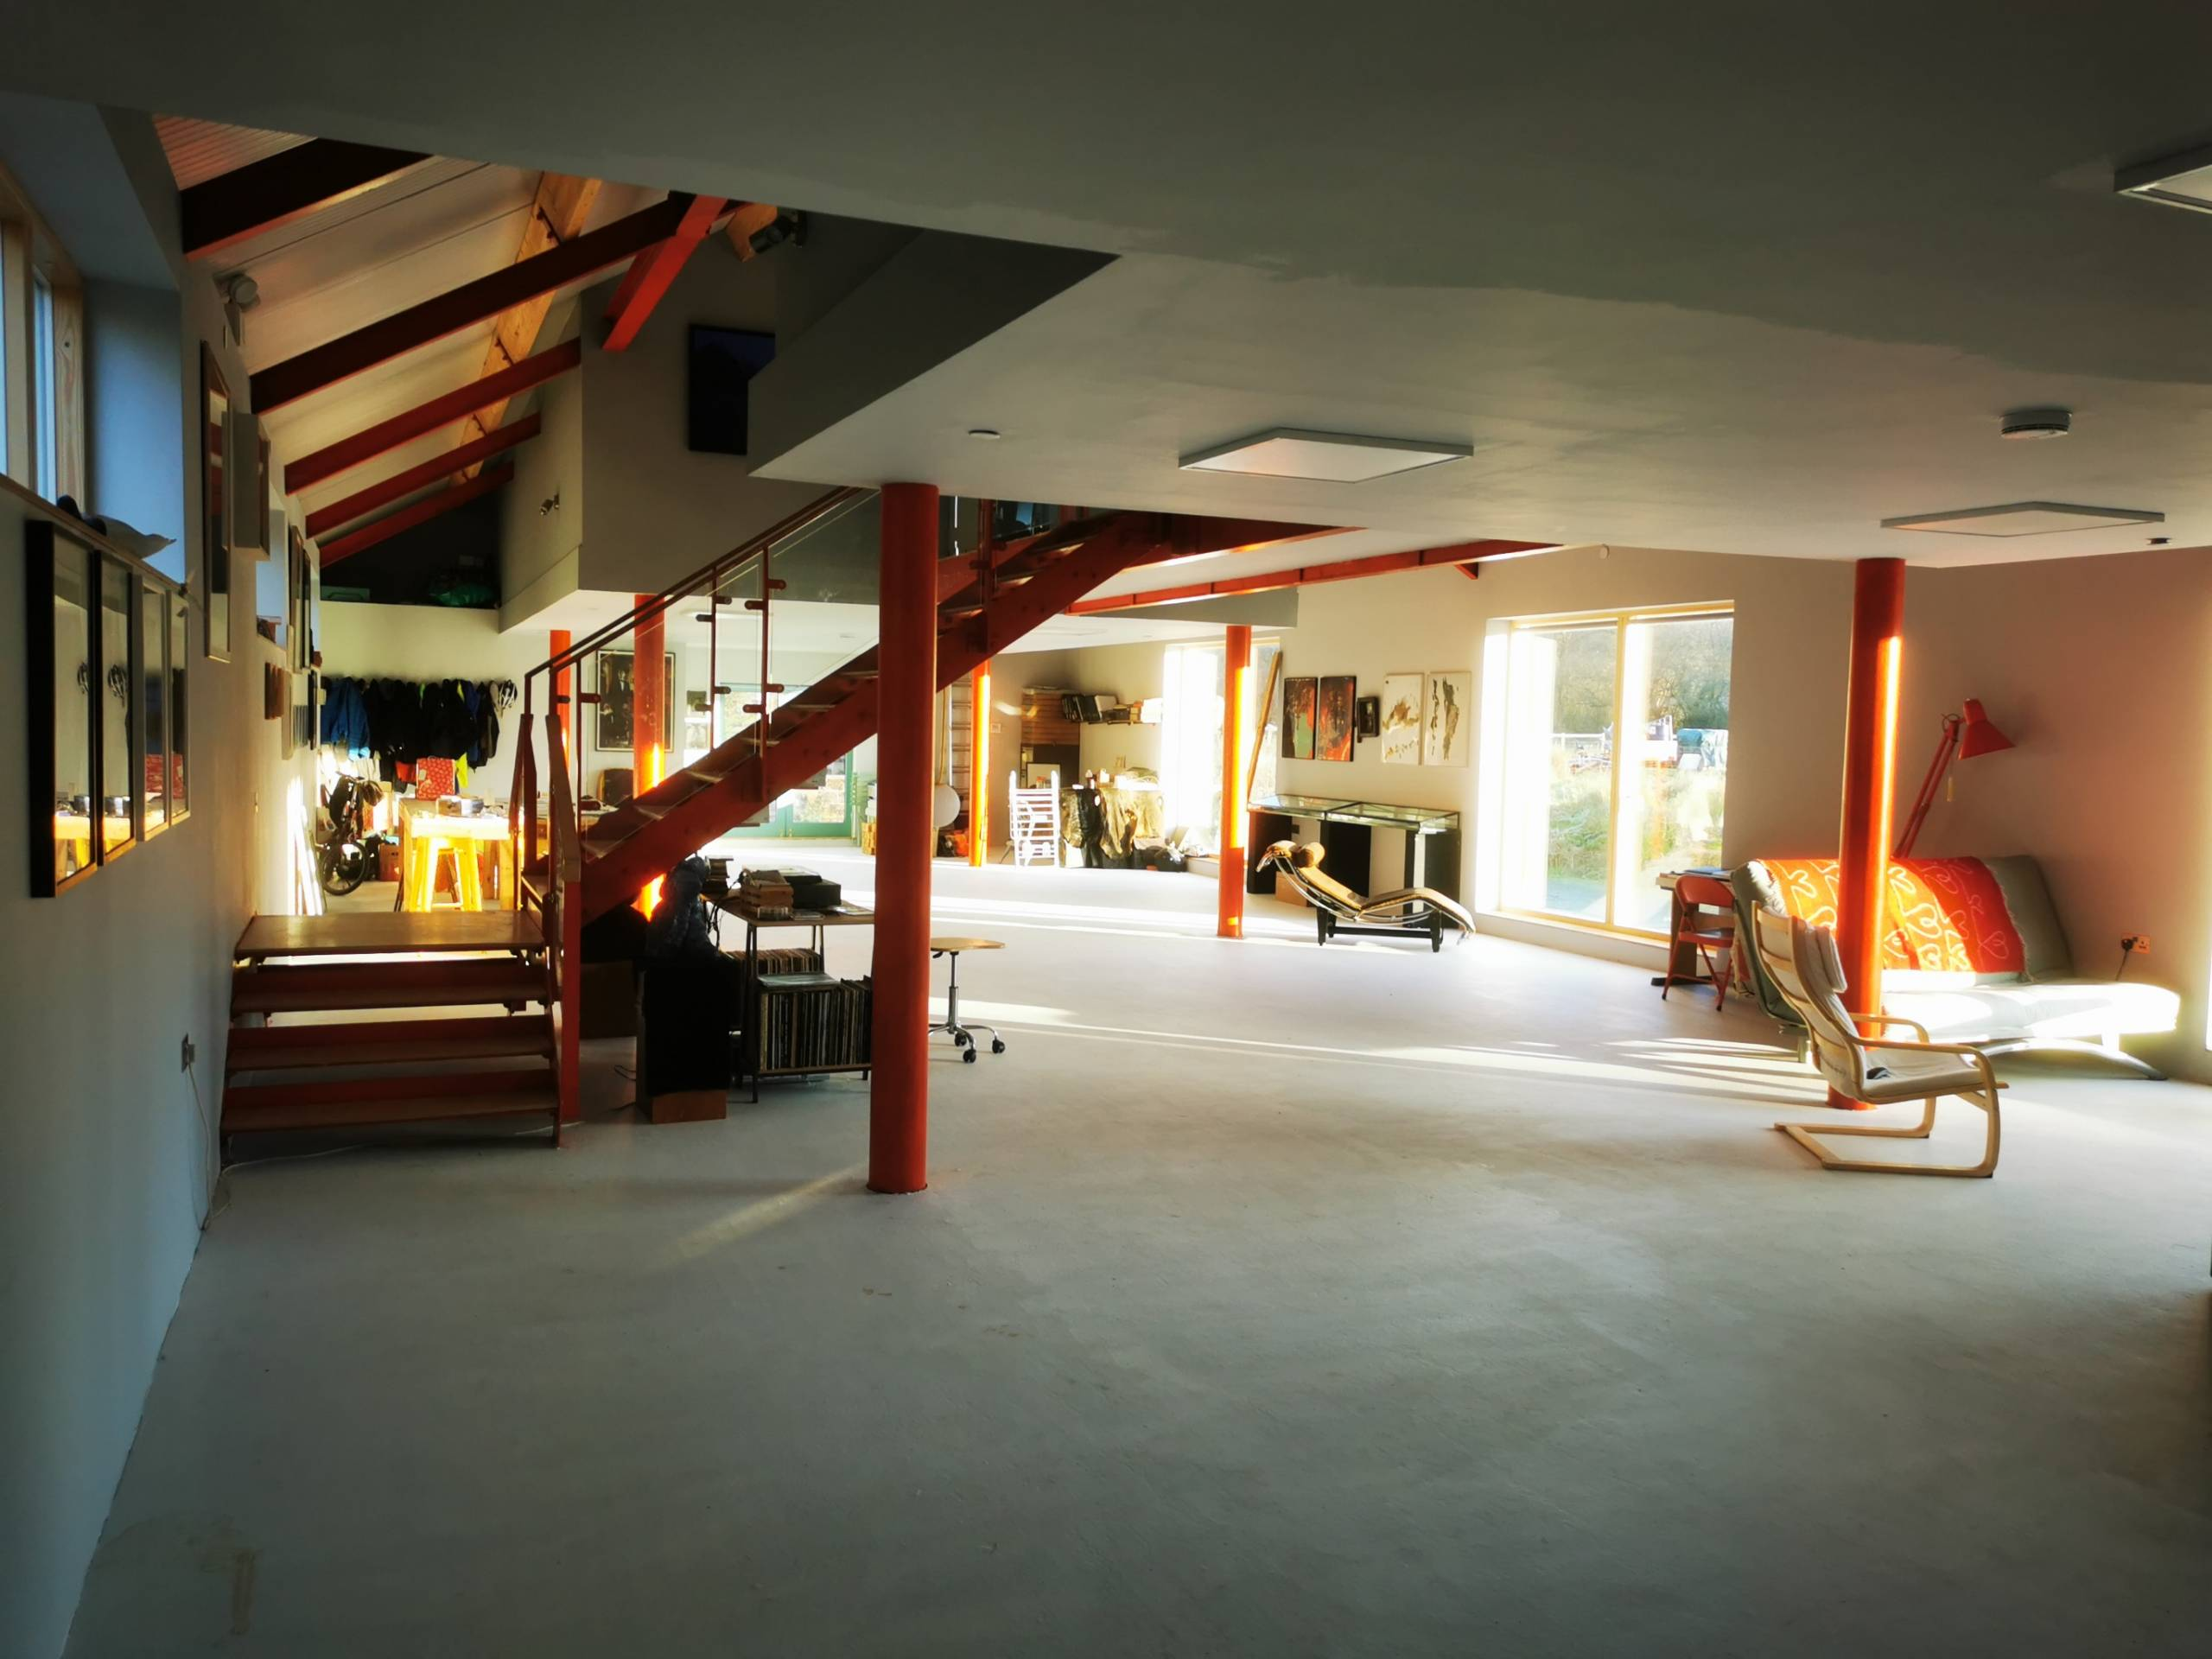 interior view of The WaterShed studio